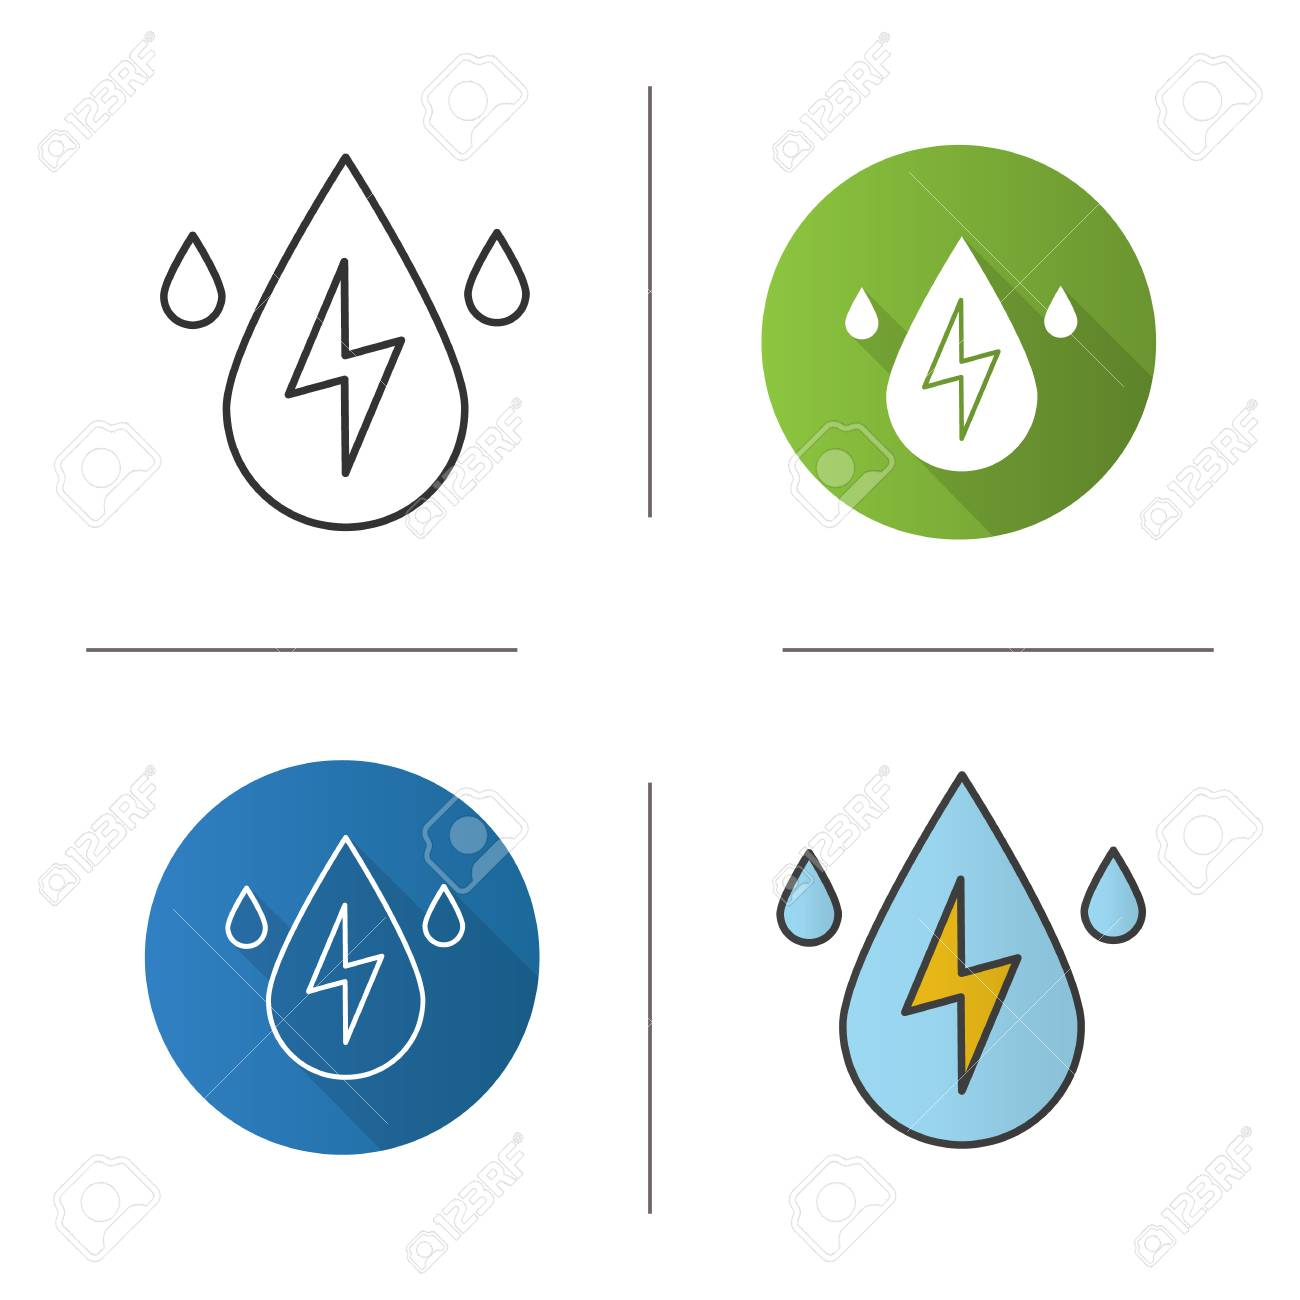 hight resolution of vector water energy icon flat design linear and color styles water drops with lightning inside hydro power plant isolated vector illustrations